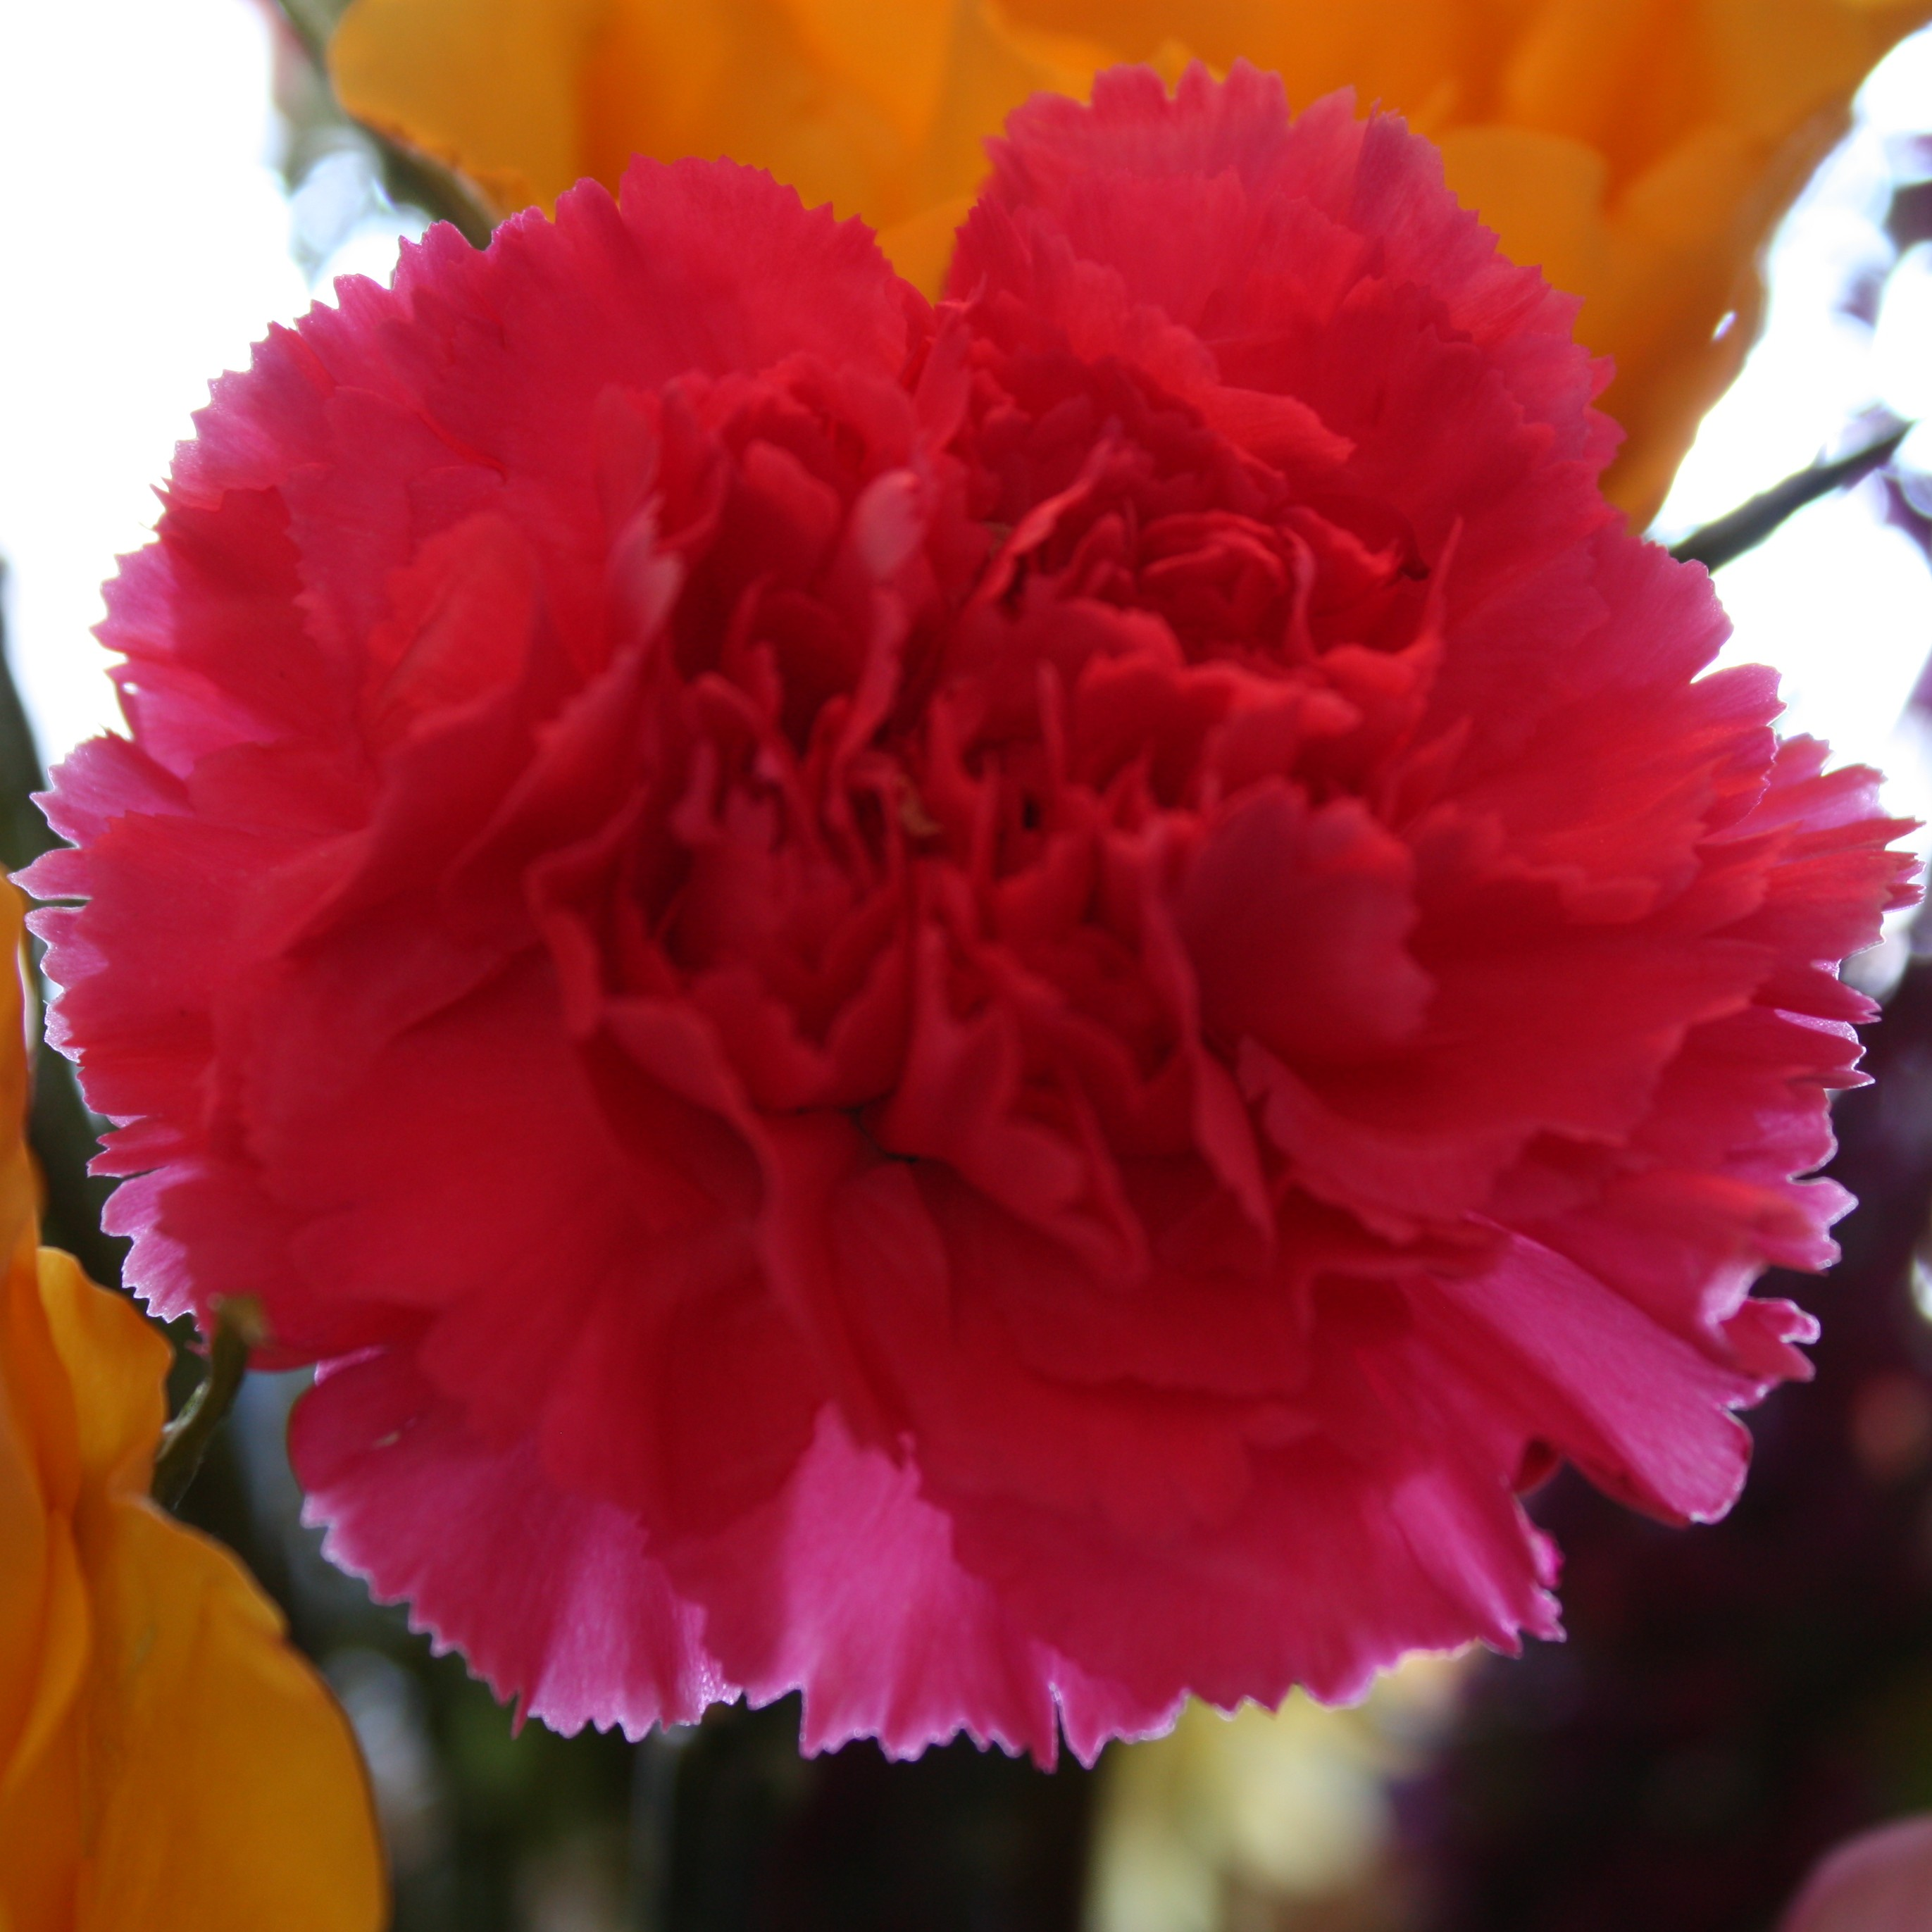 Dianthus caryophyllus this is a carnation that is commonly found in bouquets biocorpaavc